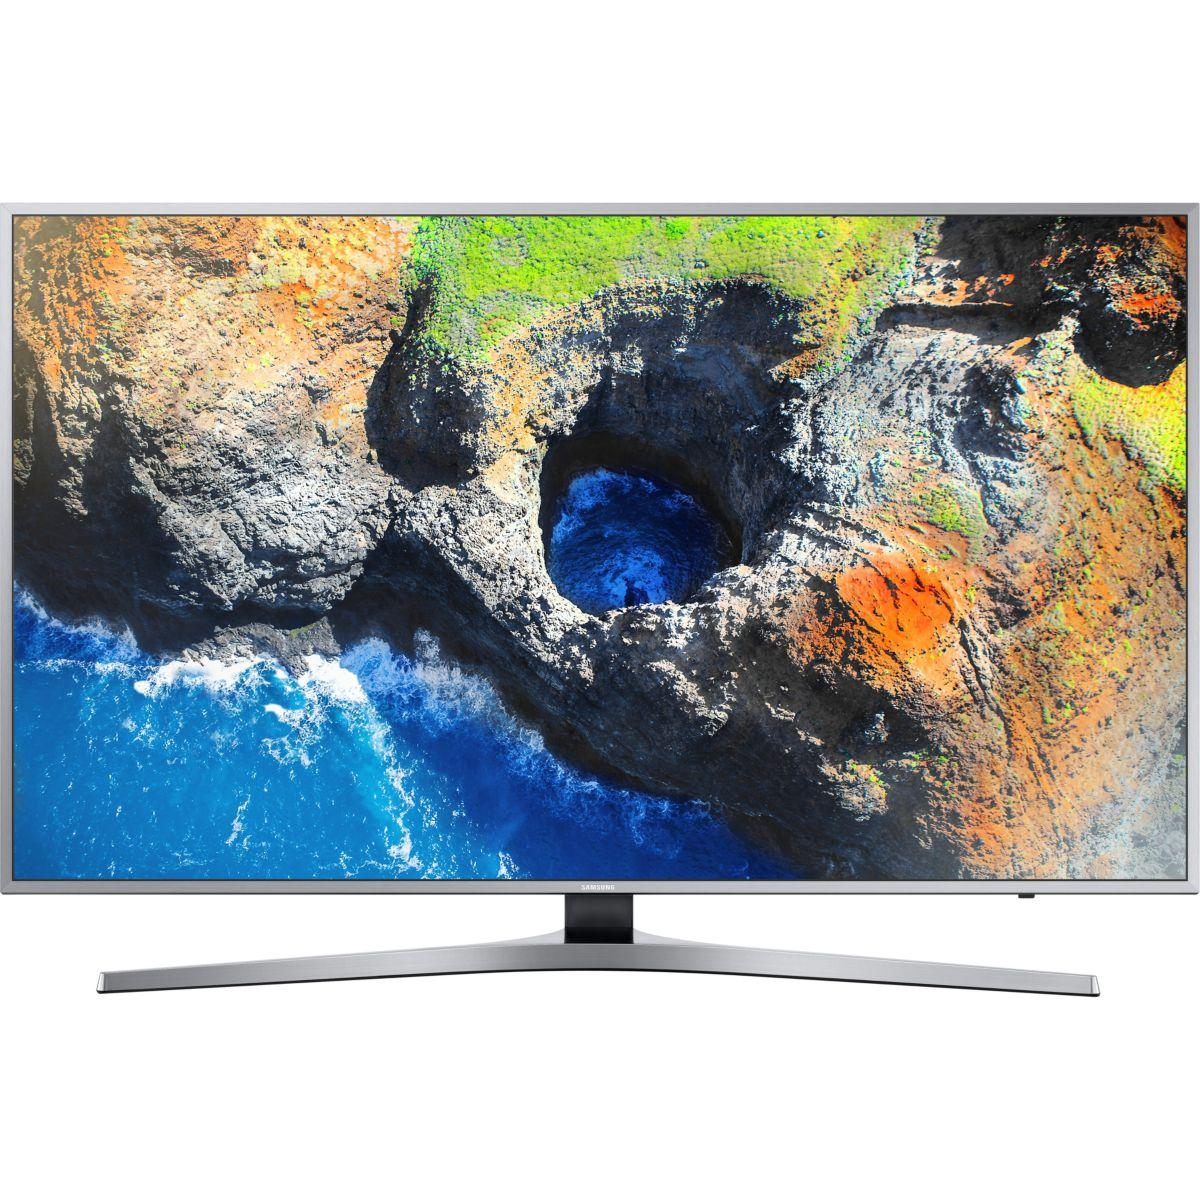 Tv samsung ue40mu6405 4k hdr smart cryst (photo)